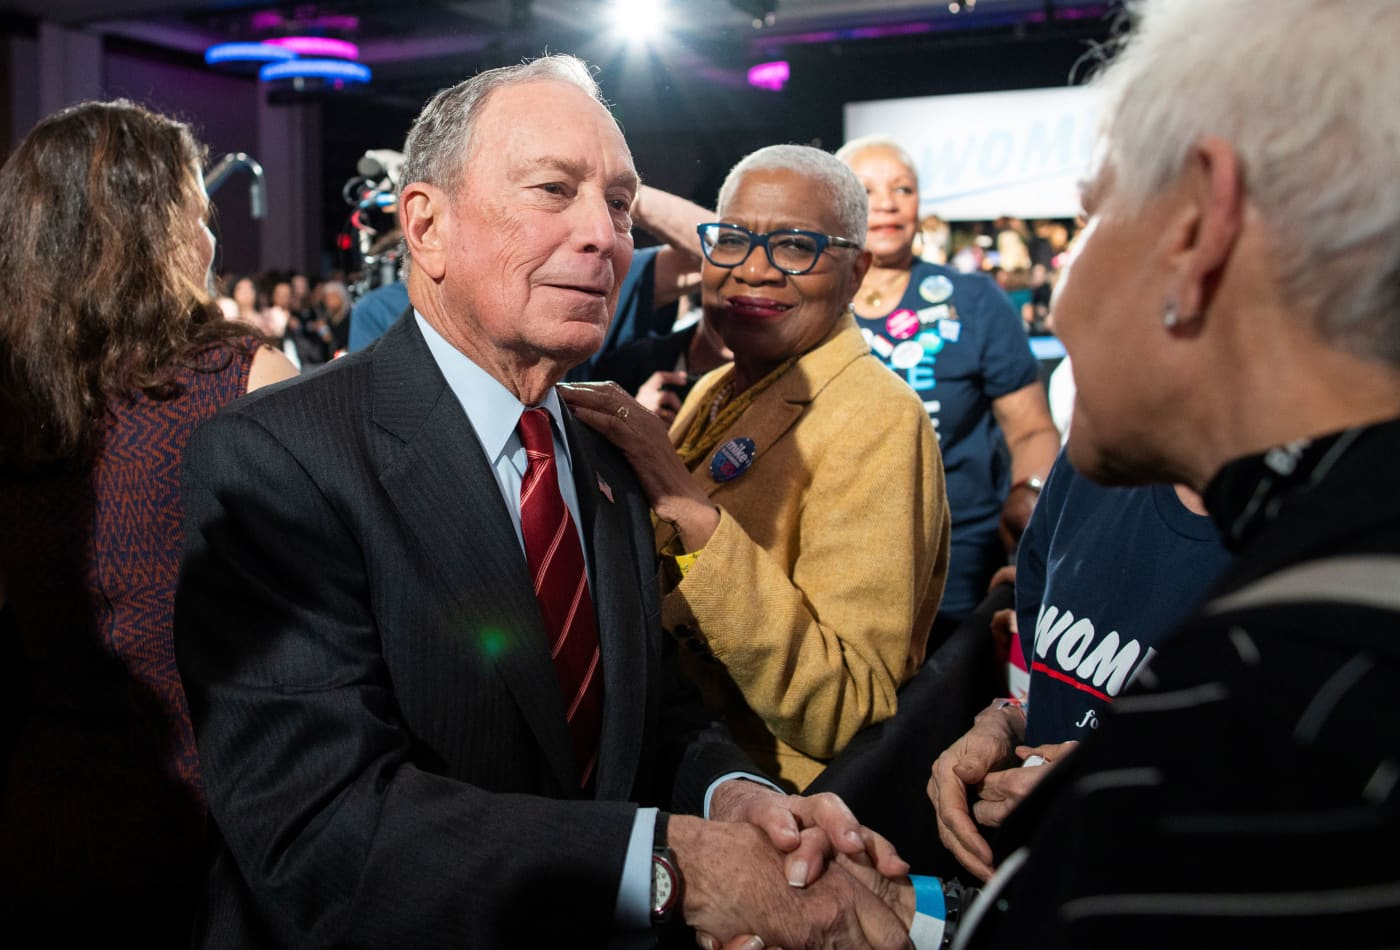 Mike Bloomberg is assembling a team of fundraising experts to recruit wealthy donors – but not to take their money